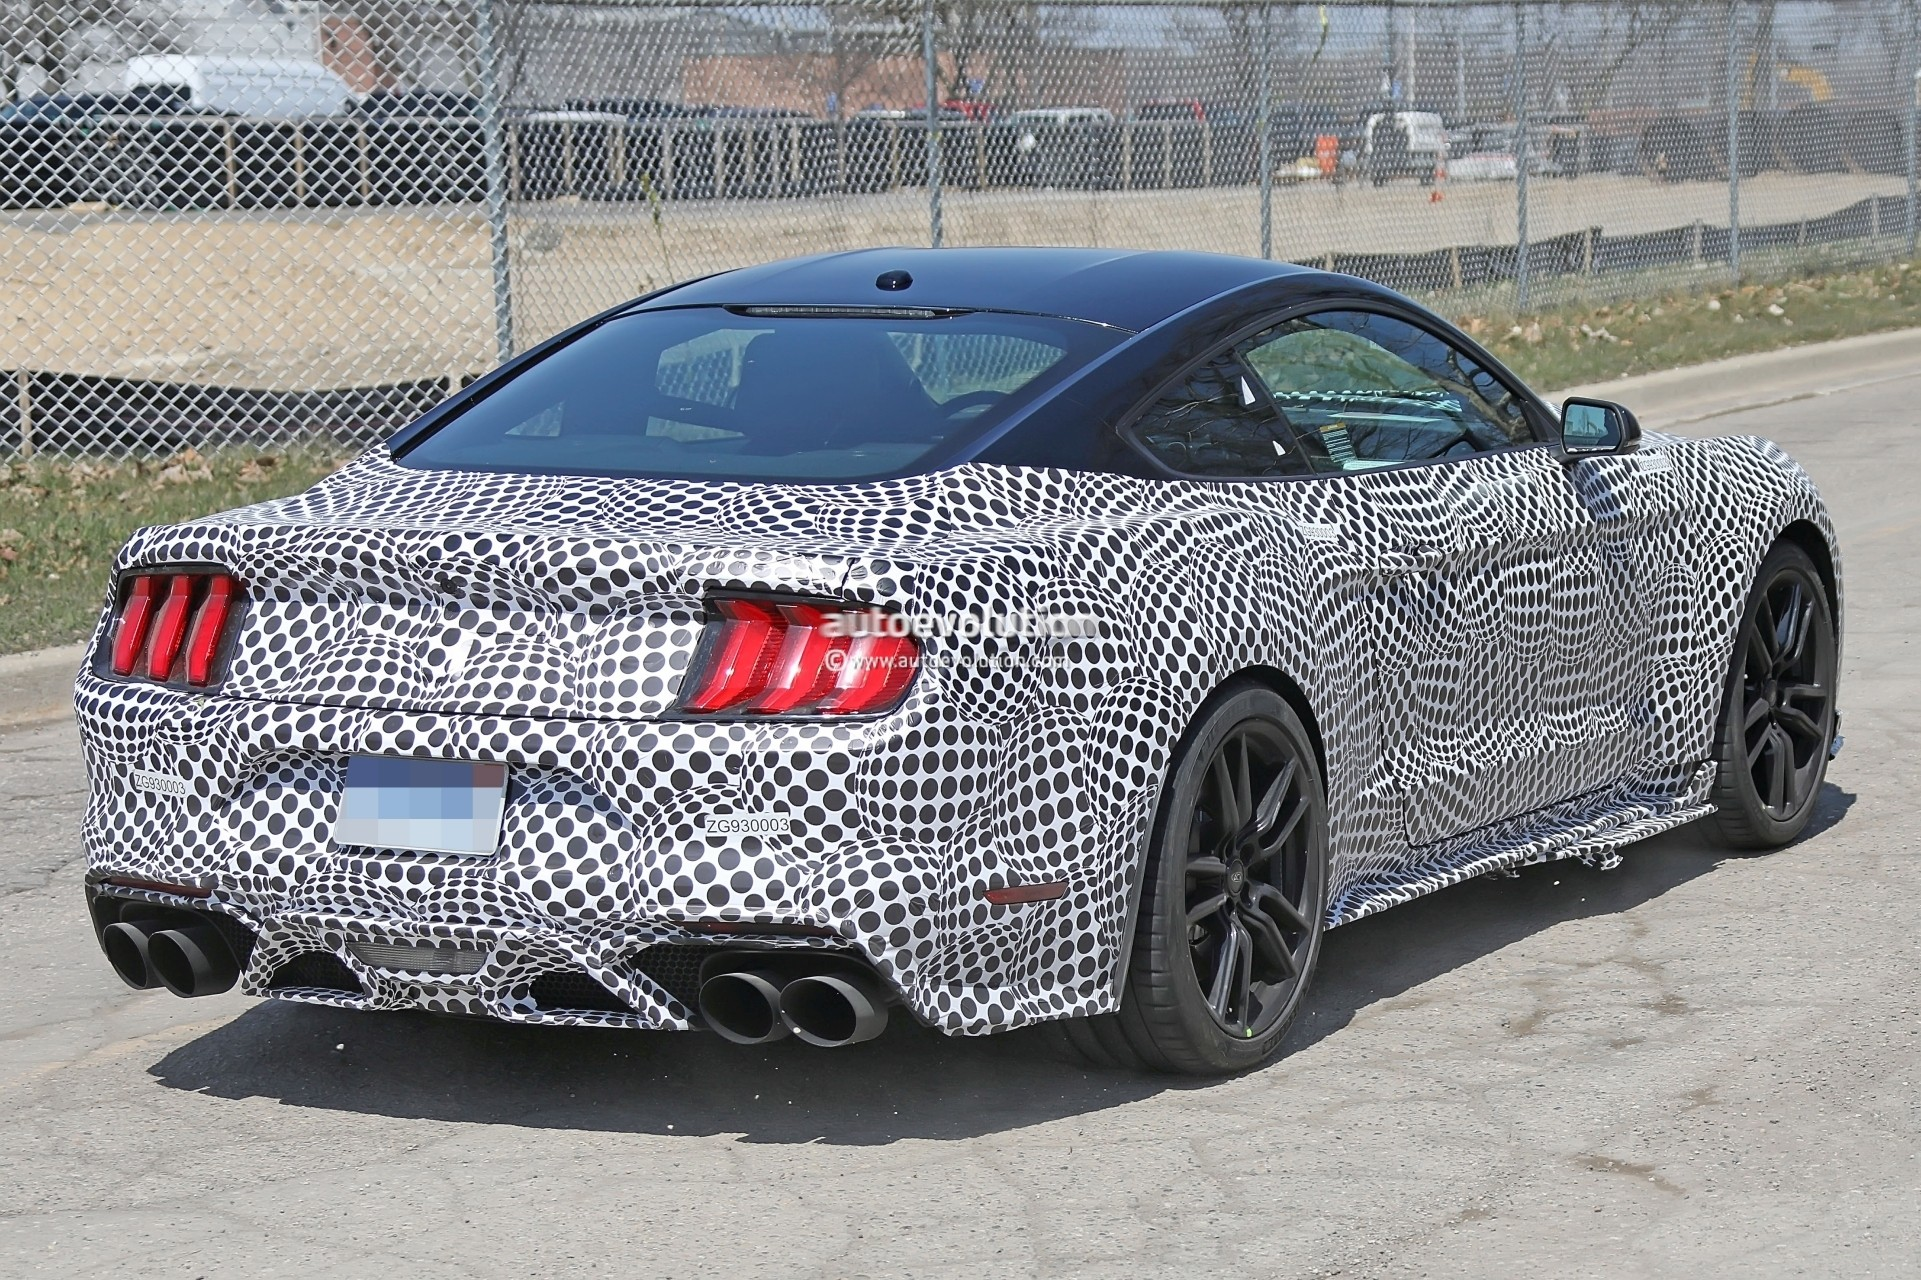 2020 Ford Mustang Shelby Gt500 Rumored To Come Exclusively With Dct